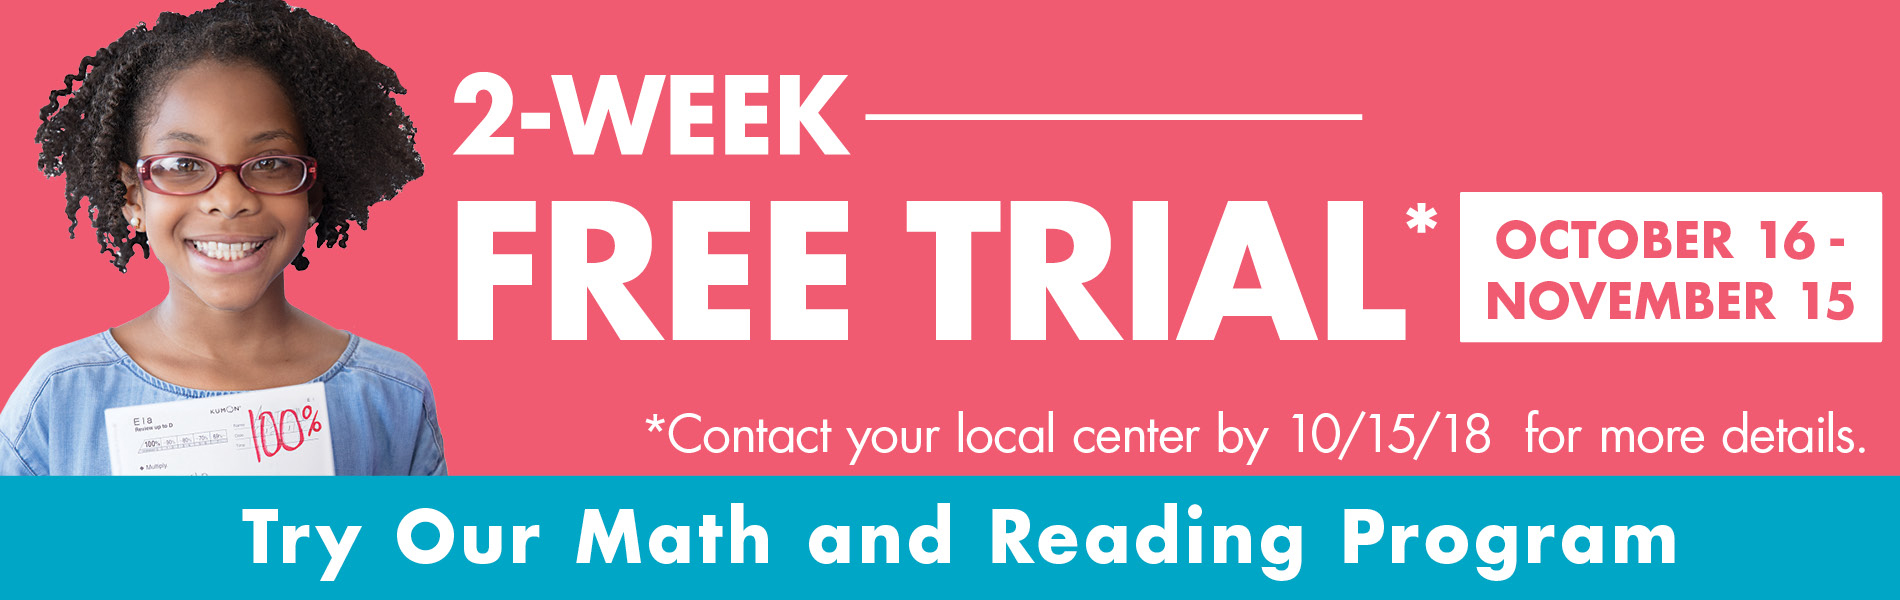 Two week free trial banner image